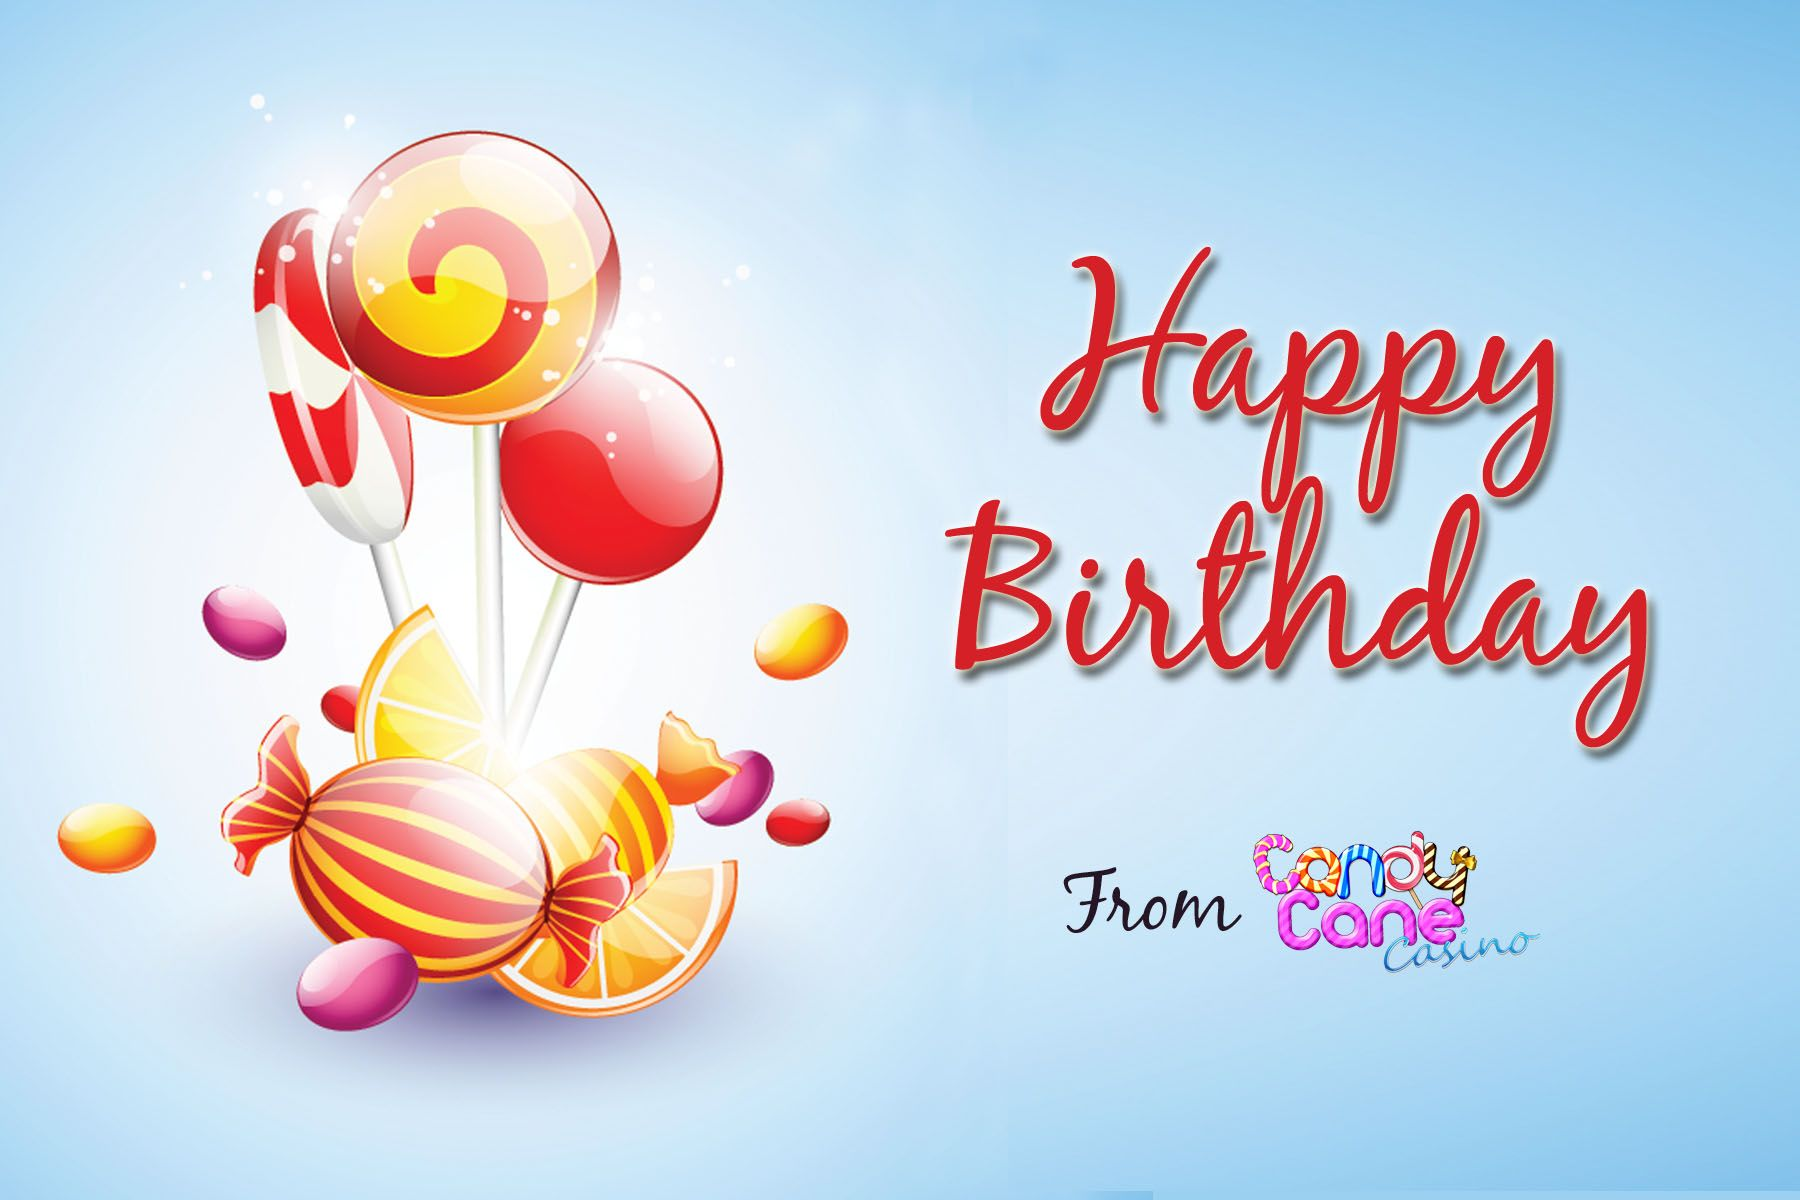 Birthday greetings for march celebrants sweet nothings pinterest birthday greetings for march celebrants m4hsunfo